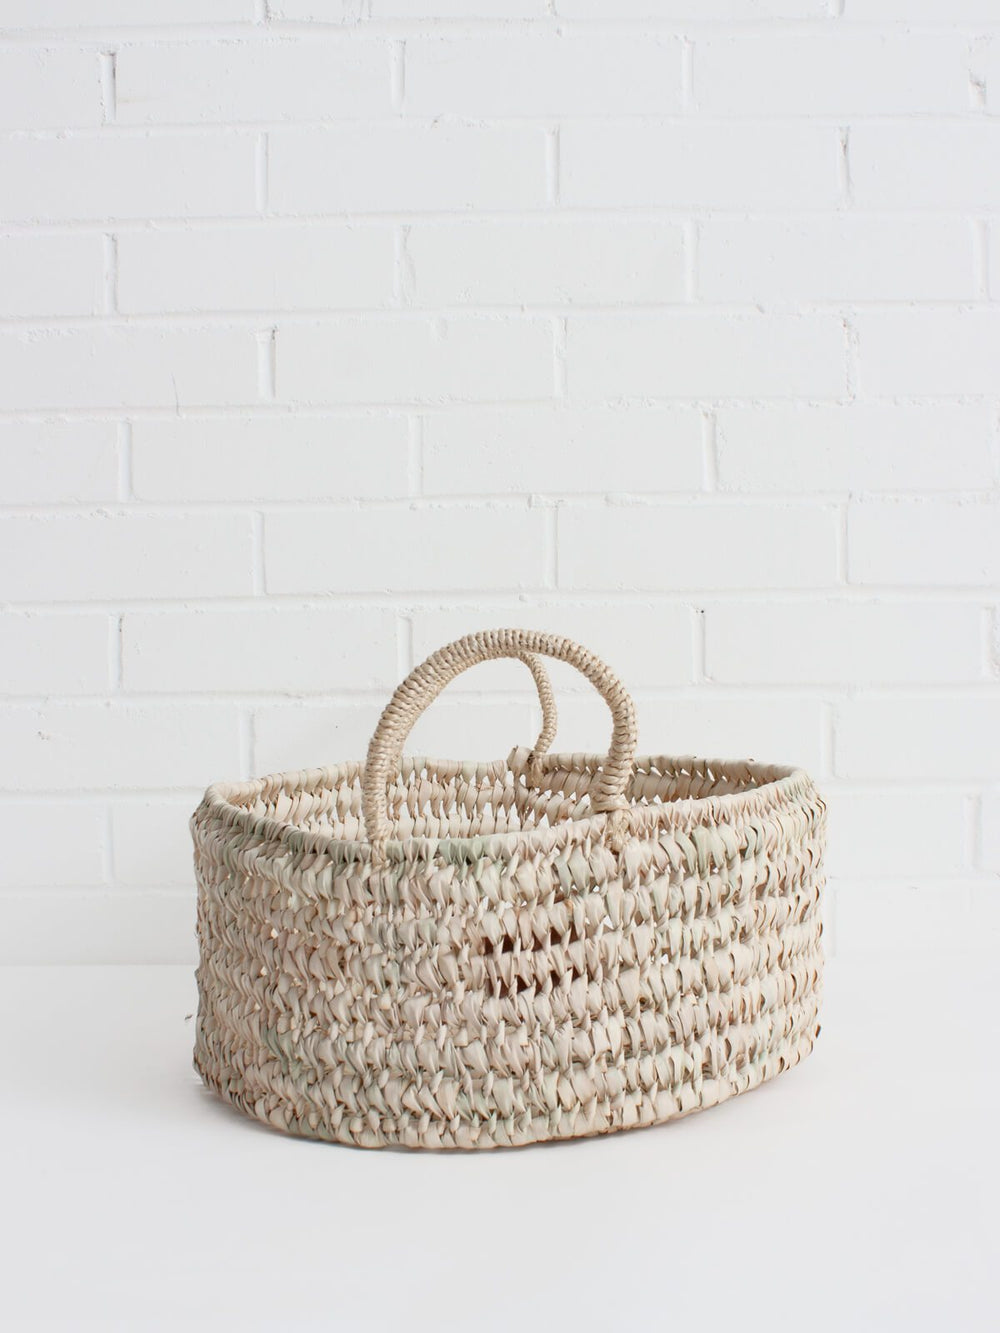 The Large Round Storage Basket is handwoven in Moroccan in a robust open weave using sustainable palm leaf and can be used as fruit bowls, bread baskets or an ideal home storage solution.